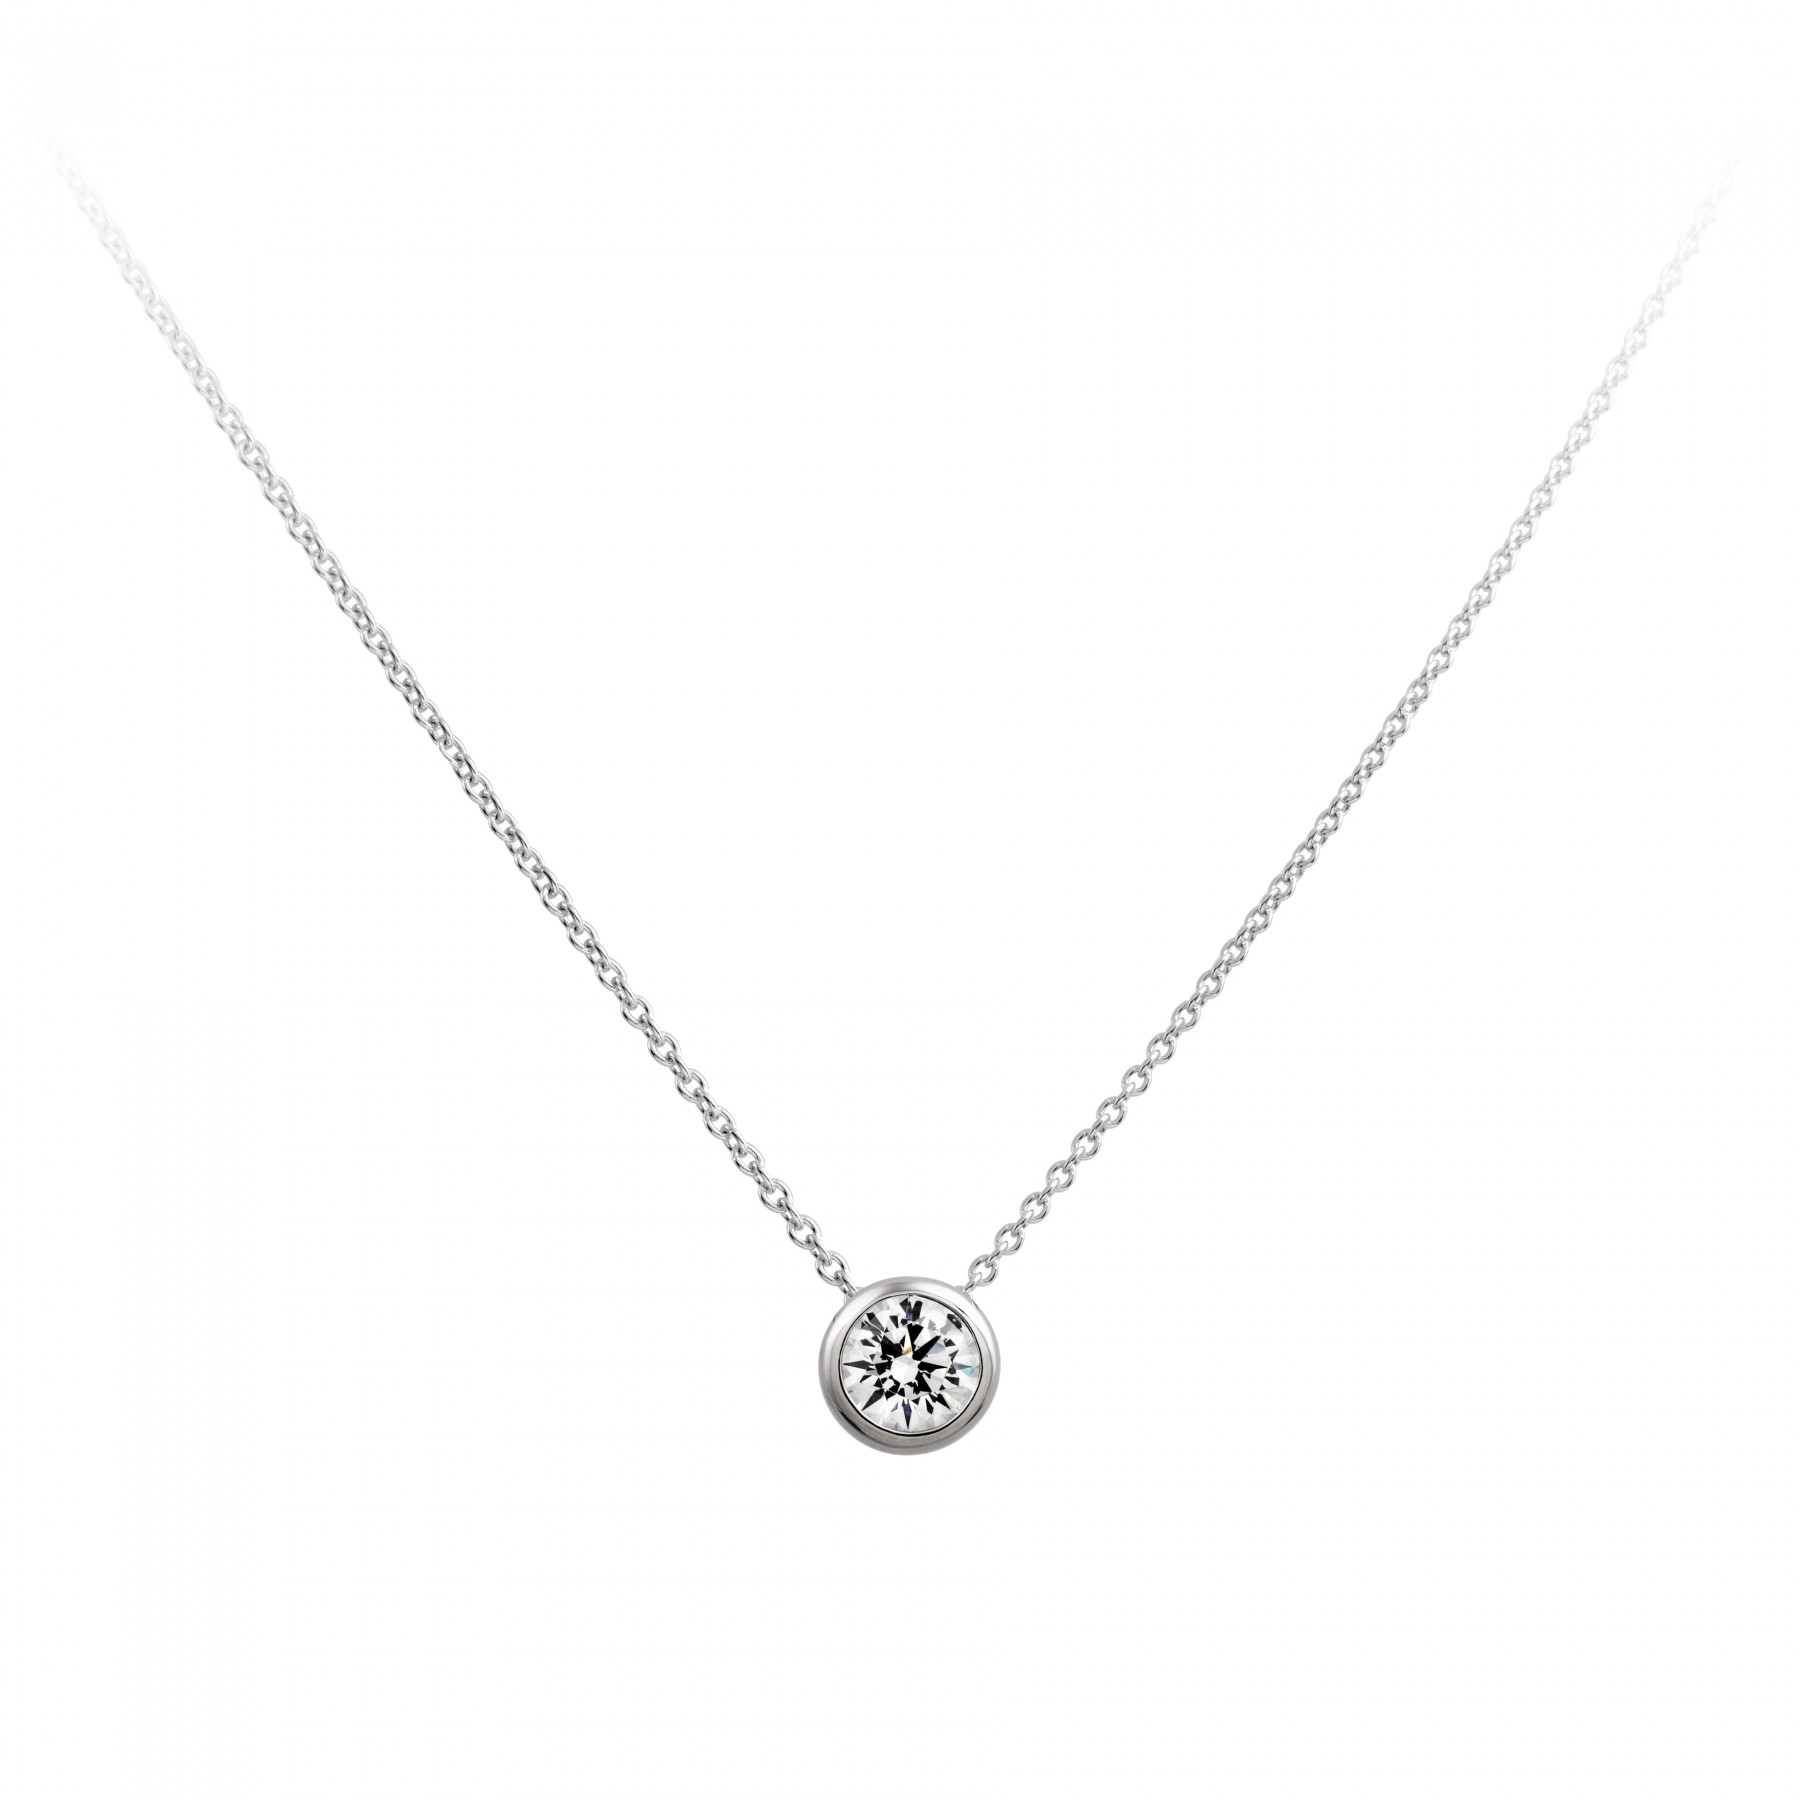 Diamonfire Zilveren Collier - 2.00 Ct 8 Mm 45 Cm Solitaire Kastzetting 803.0845.45